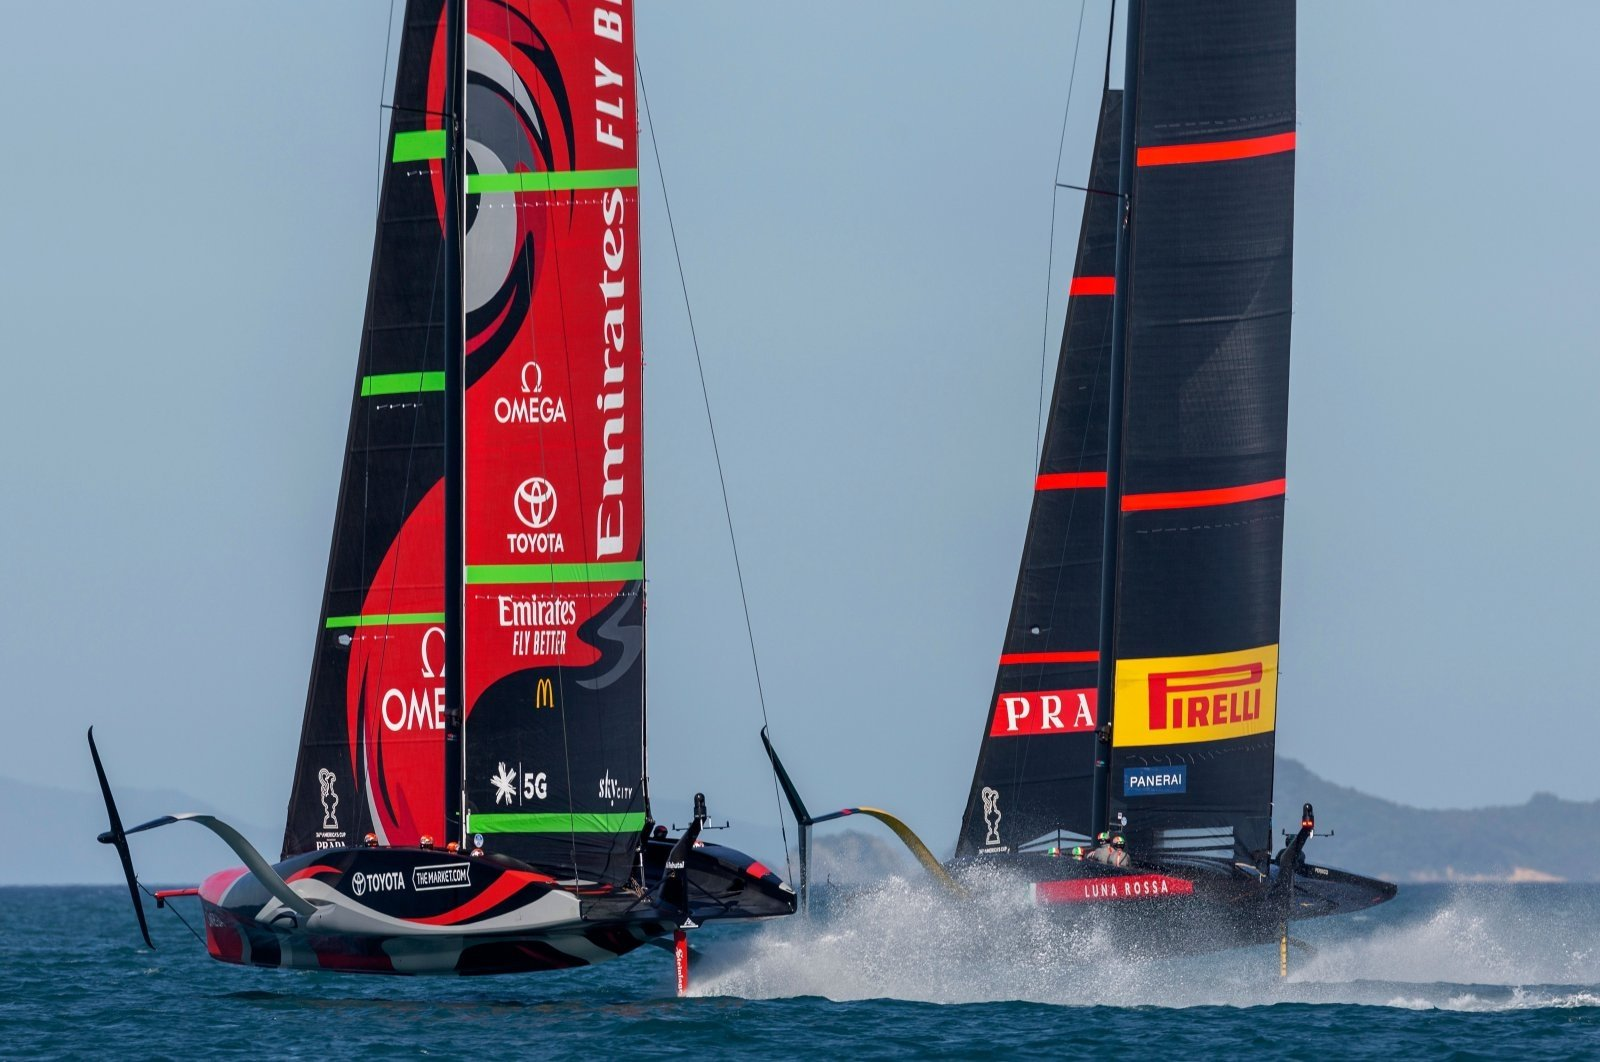 Luna Rossa Prada Pirelli (R) competes against Emirates Team New Zealand on practice racing day, in Auckland, New Zealand, Dec. 15, 2020. (AFP Photo)